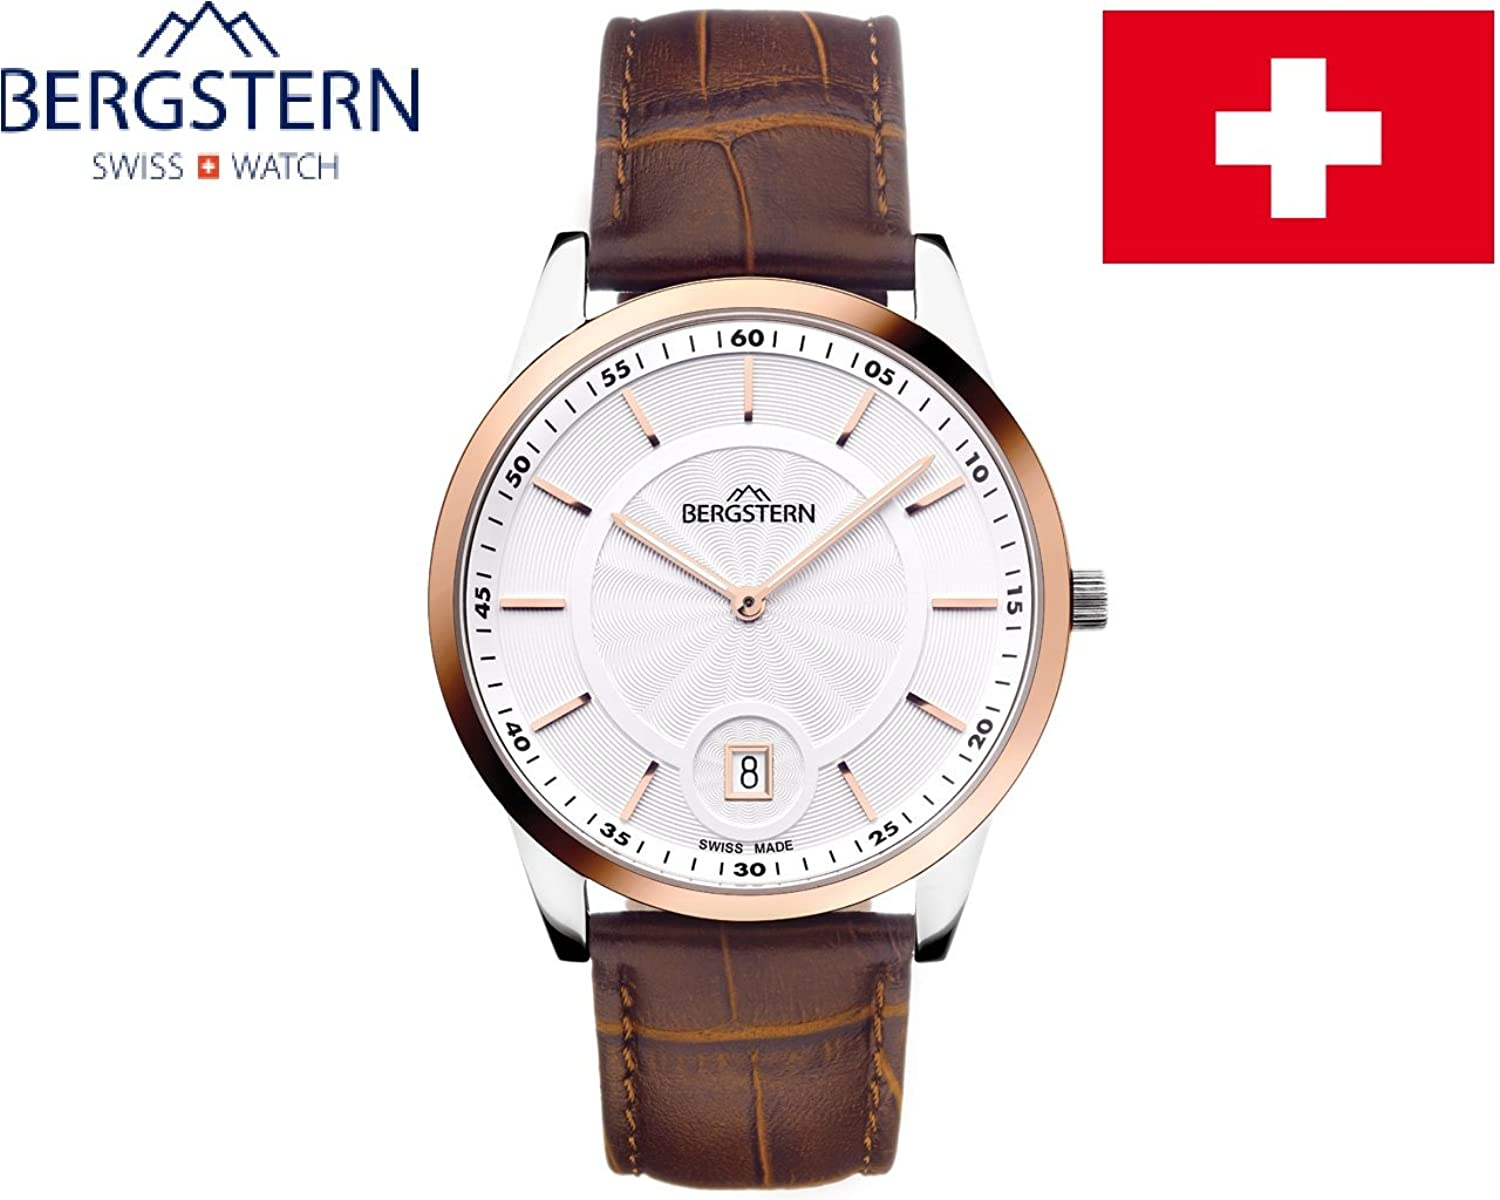 ARMBANDUHR MEN'S COLLECTION HARMONY BERGSTERN B006G035 .made SWISS whatch hoher QualitÄt MADE IN SVIZZERA.Cinturino